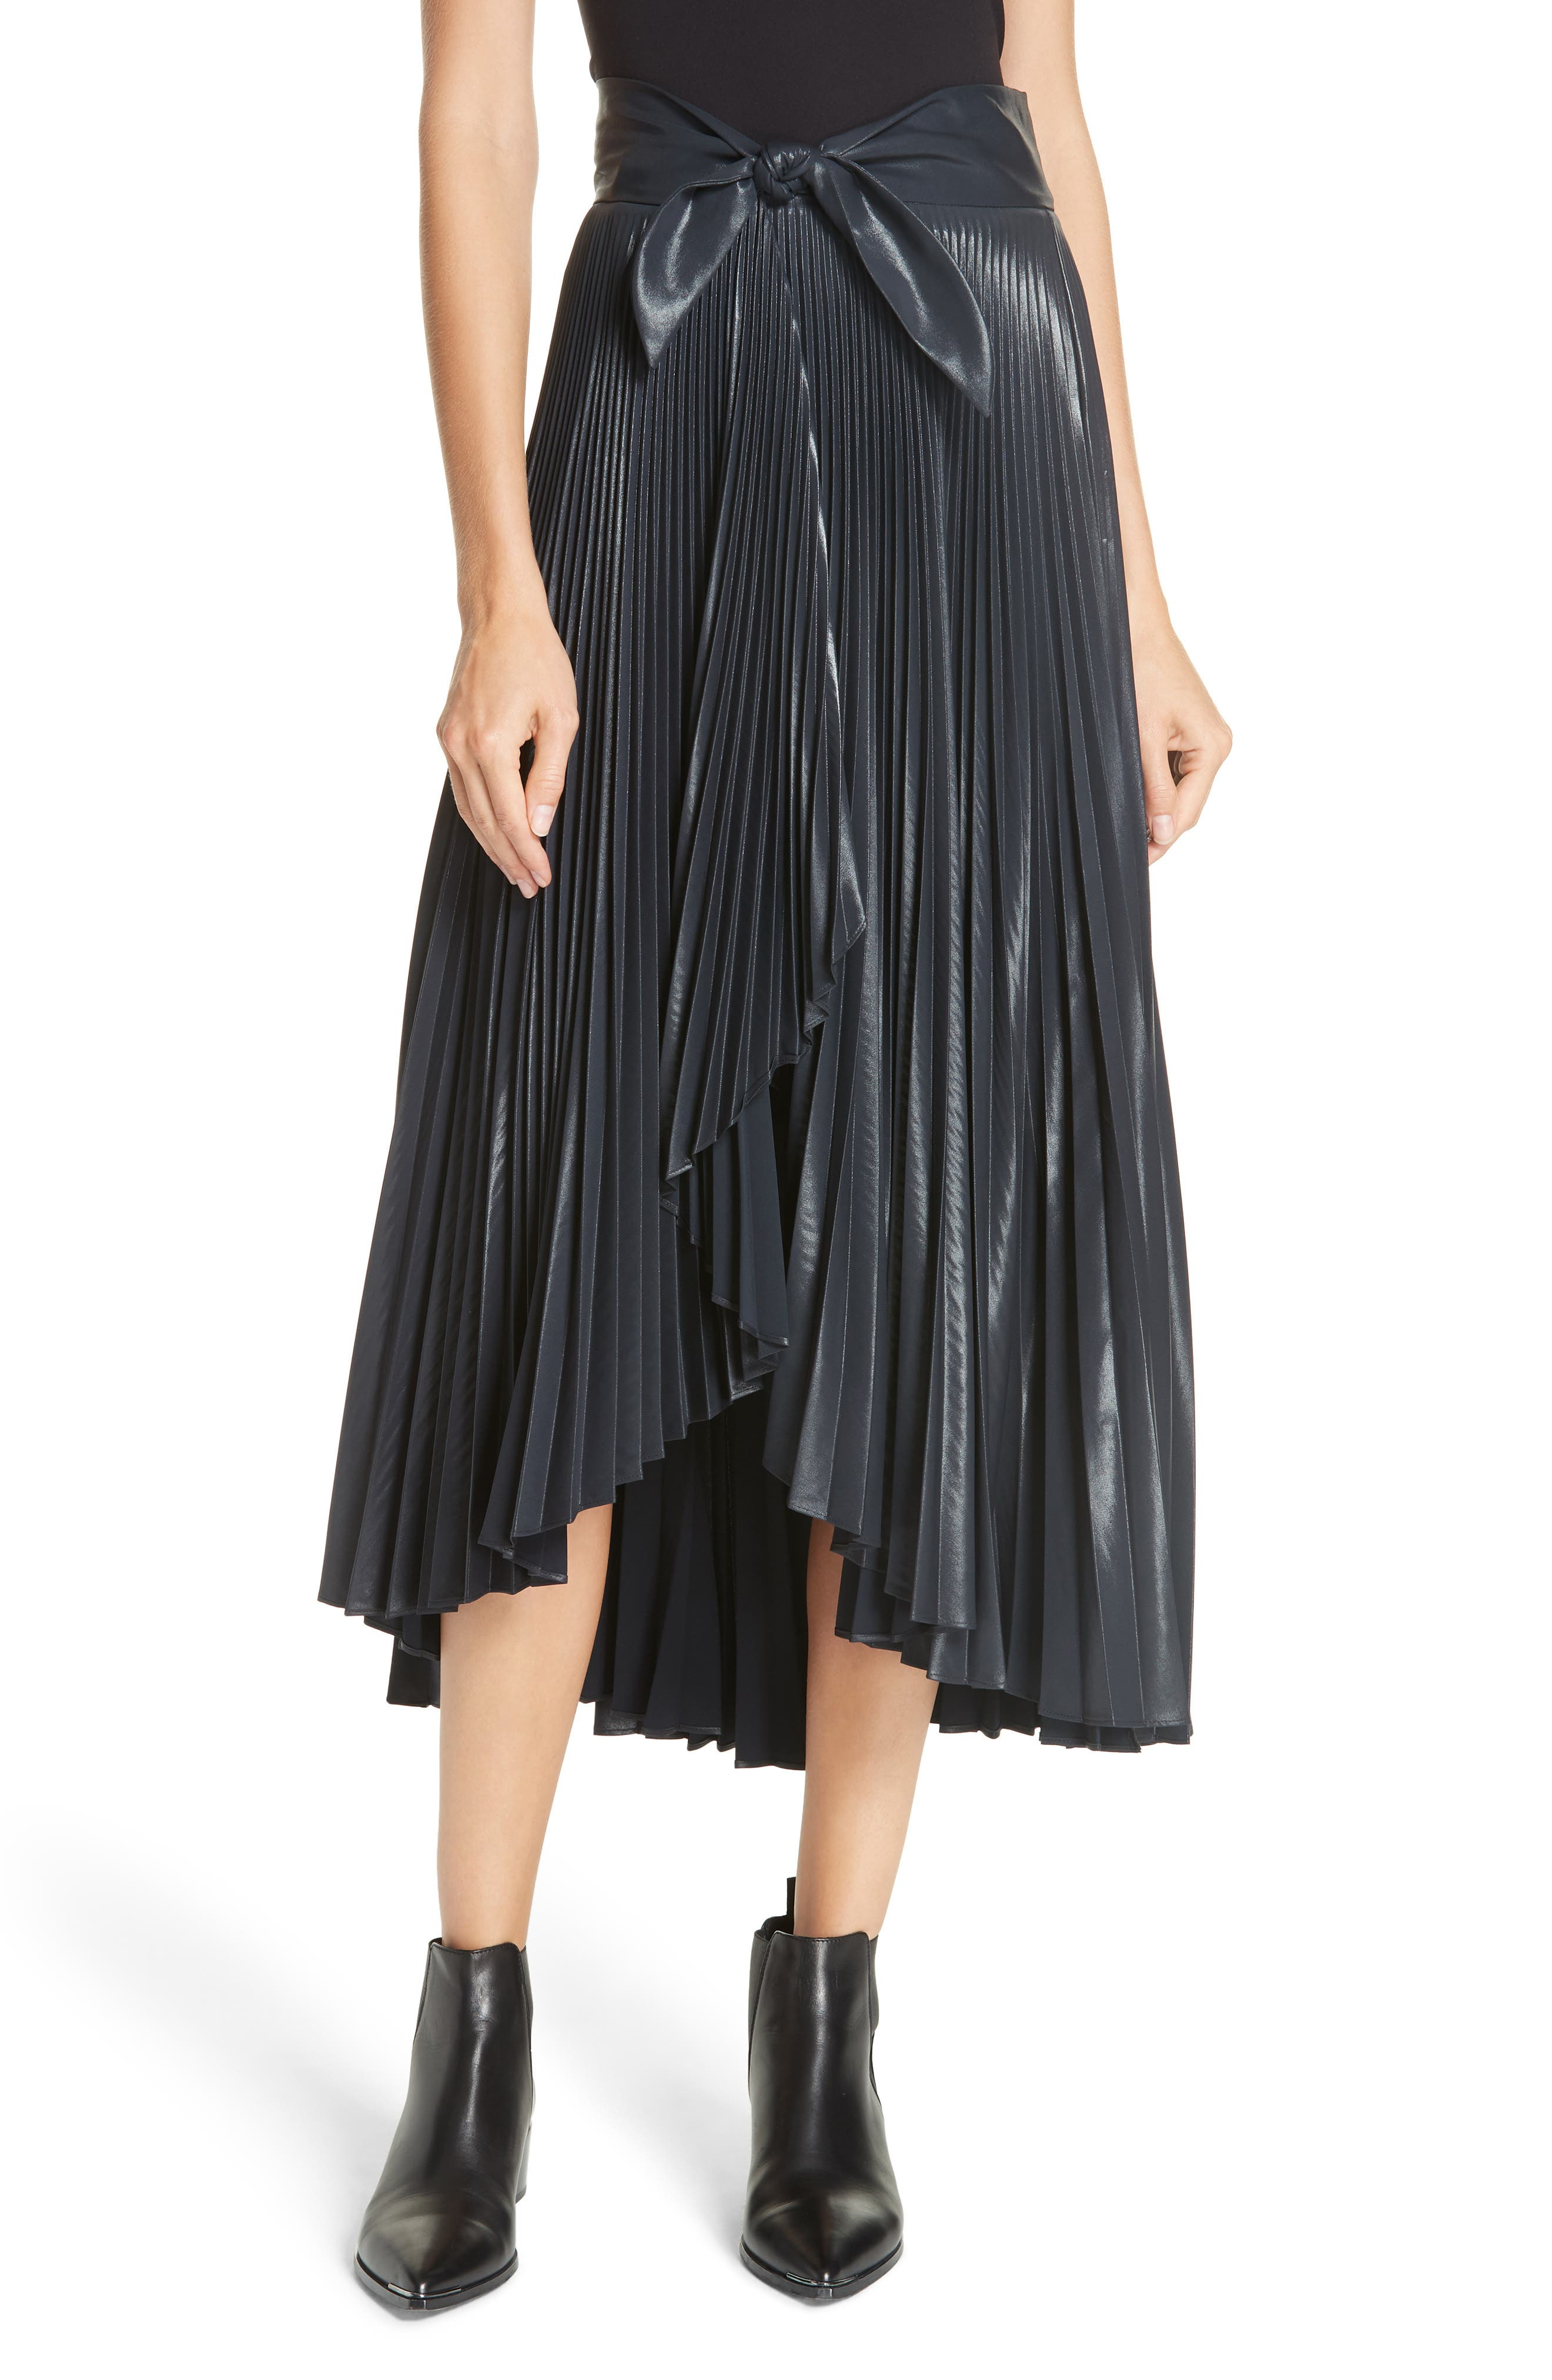 Eleanor Pleated Wrap Skirt - Navy Size 2 in Black